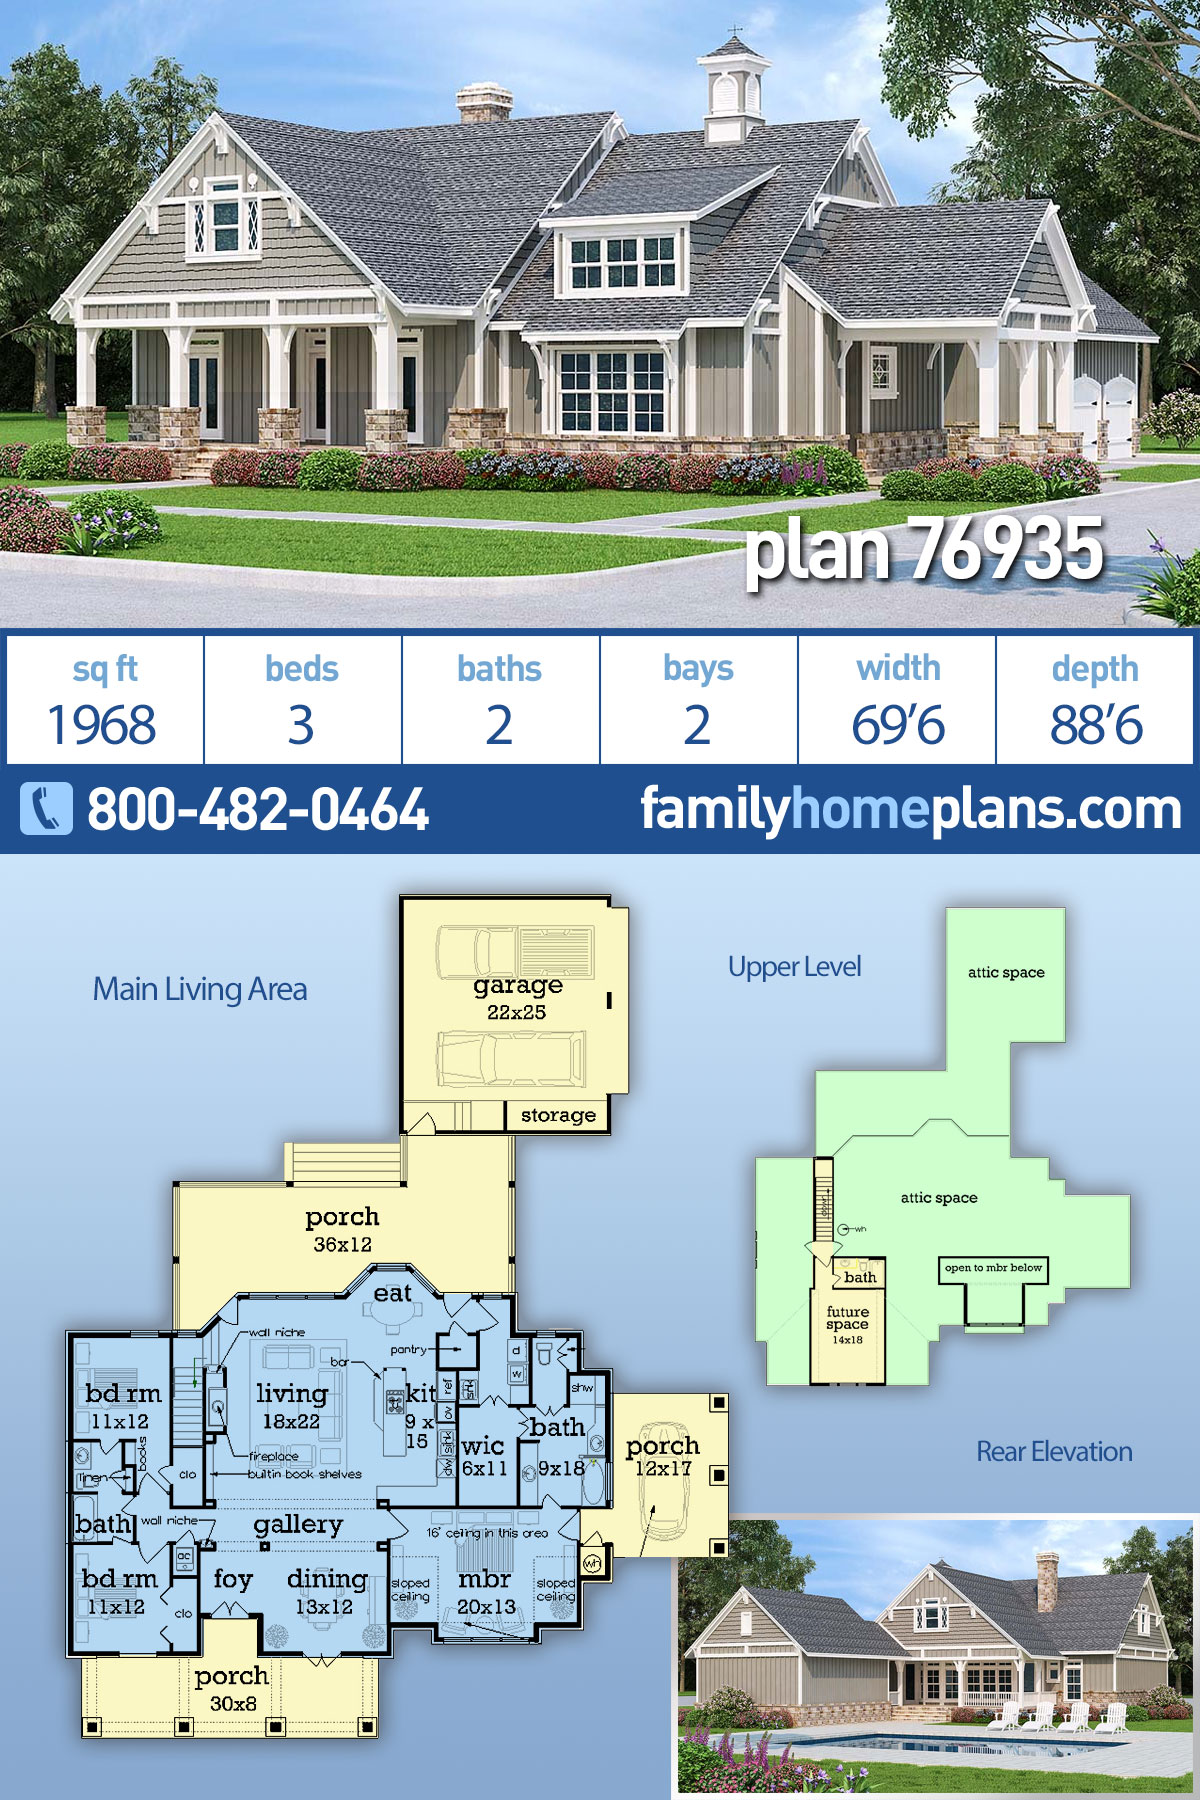 Craftsman House Plan 76935 with 3 Beds , 2 Baths , 2 Car Garage